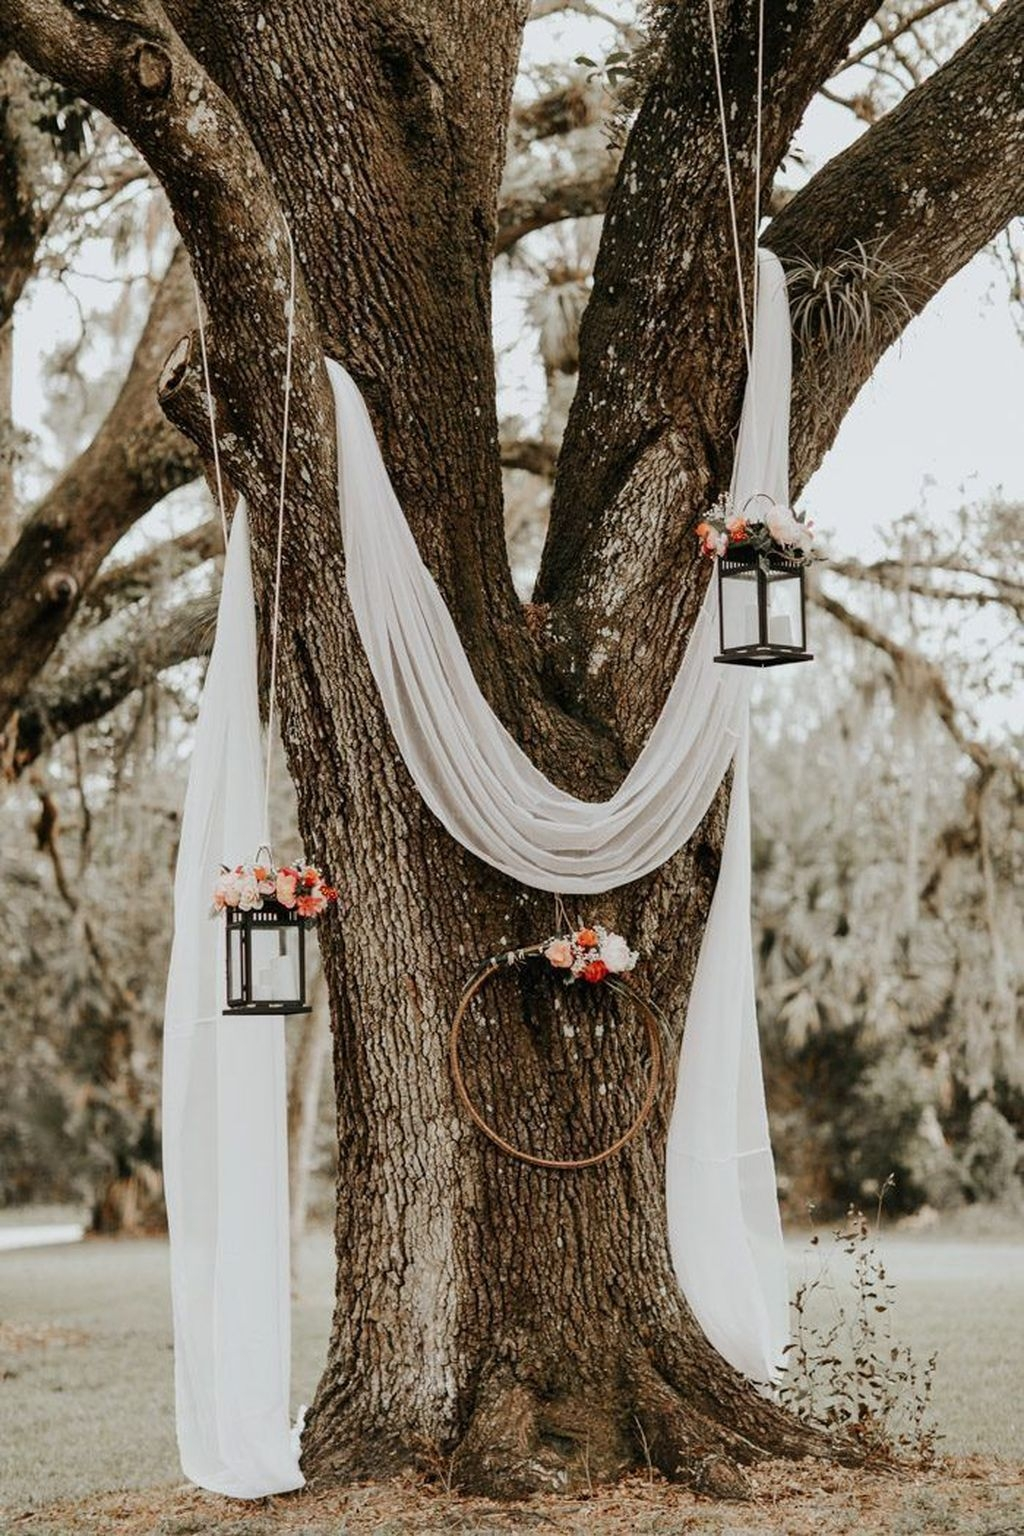 Where to find Women Who Live Near You Splendid Wedding Decorations Ideas On A Budget To Try 09